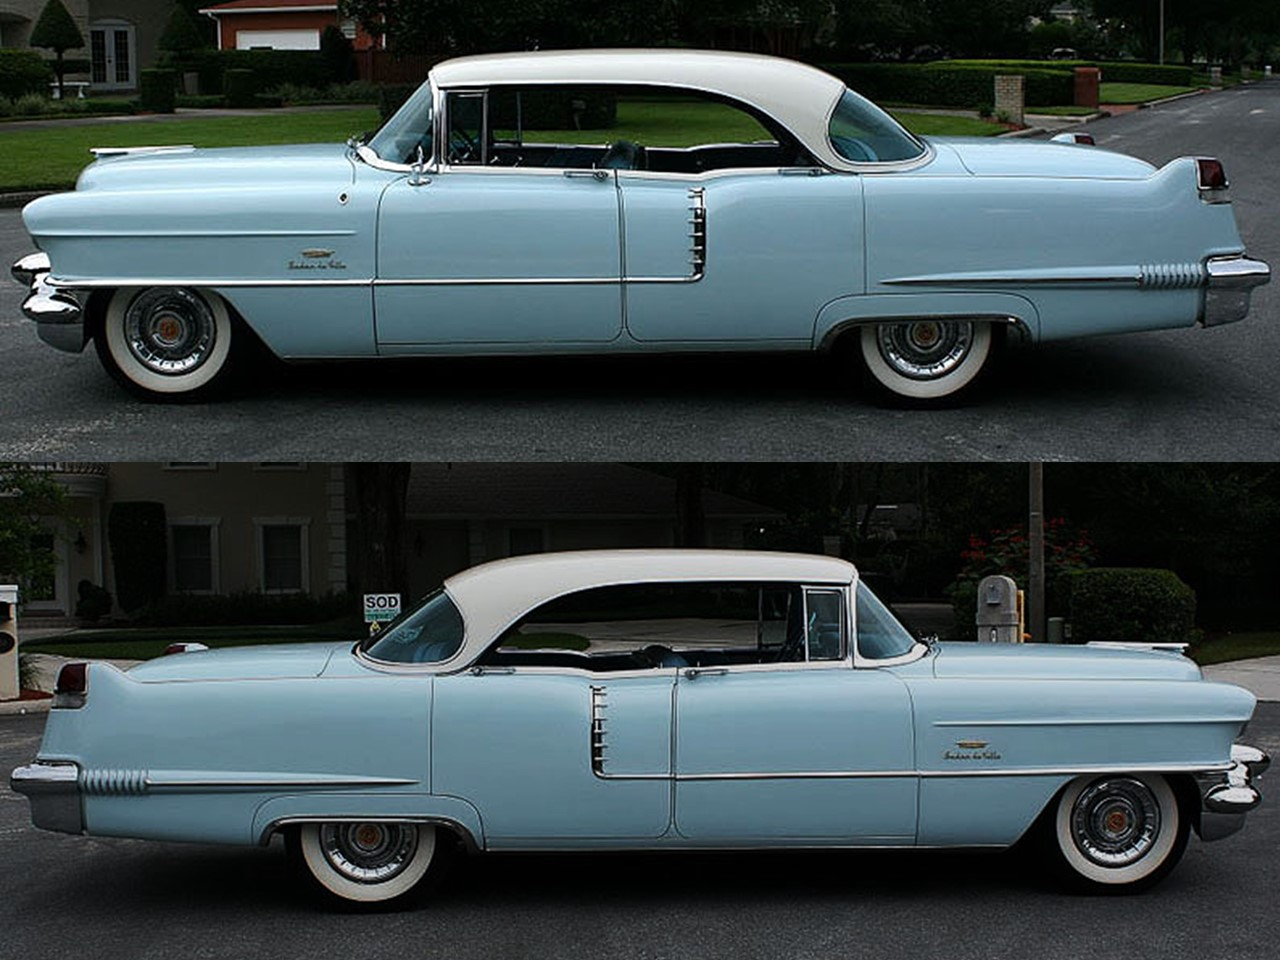 1956 coupe deville notoriousluxury for 1956 cadillac 4 door sedan